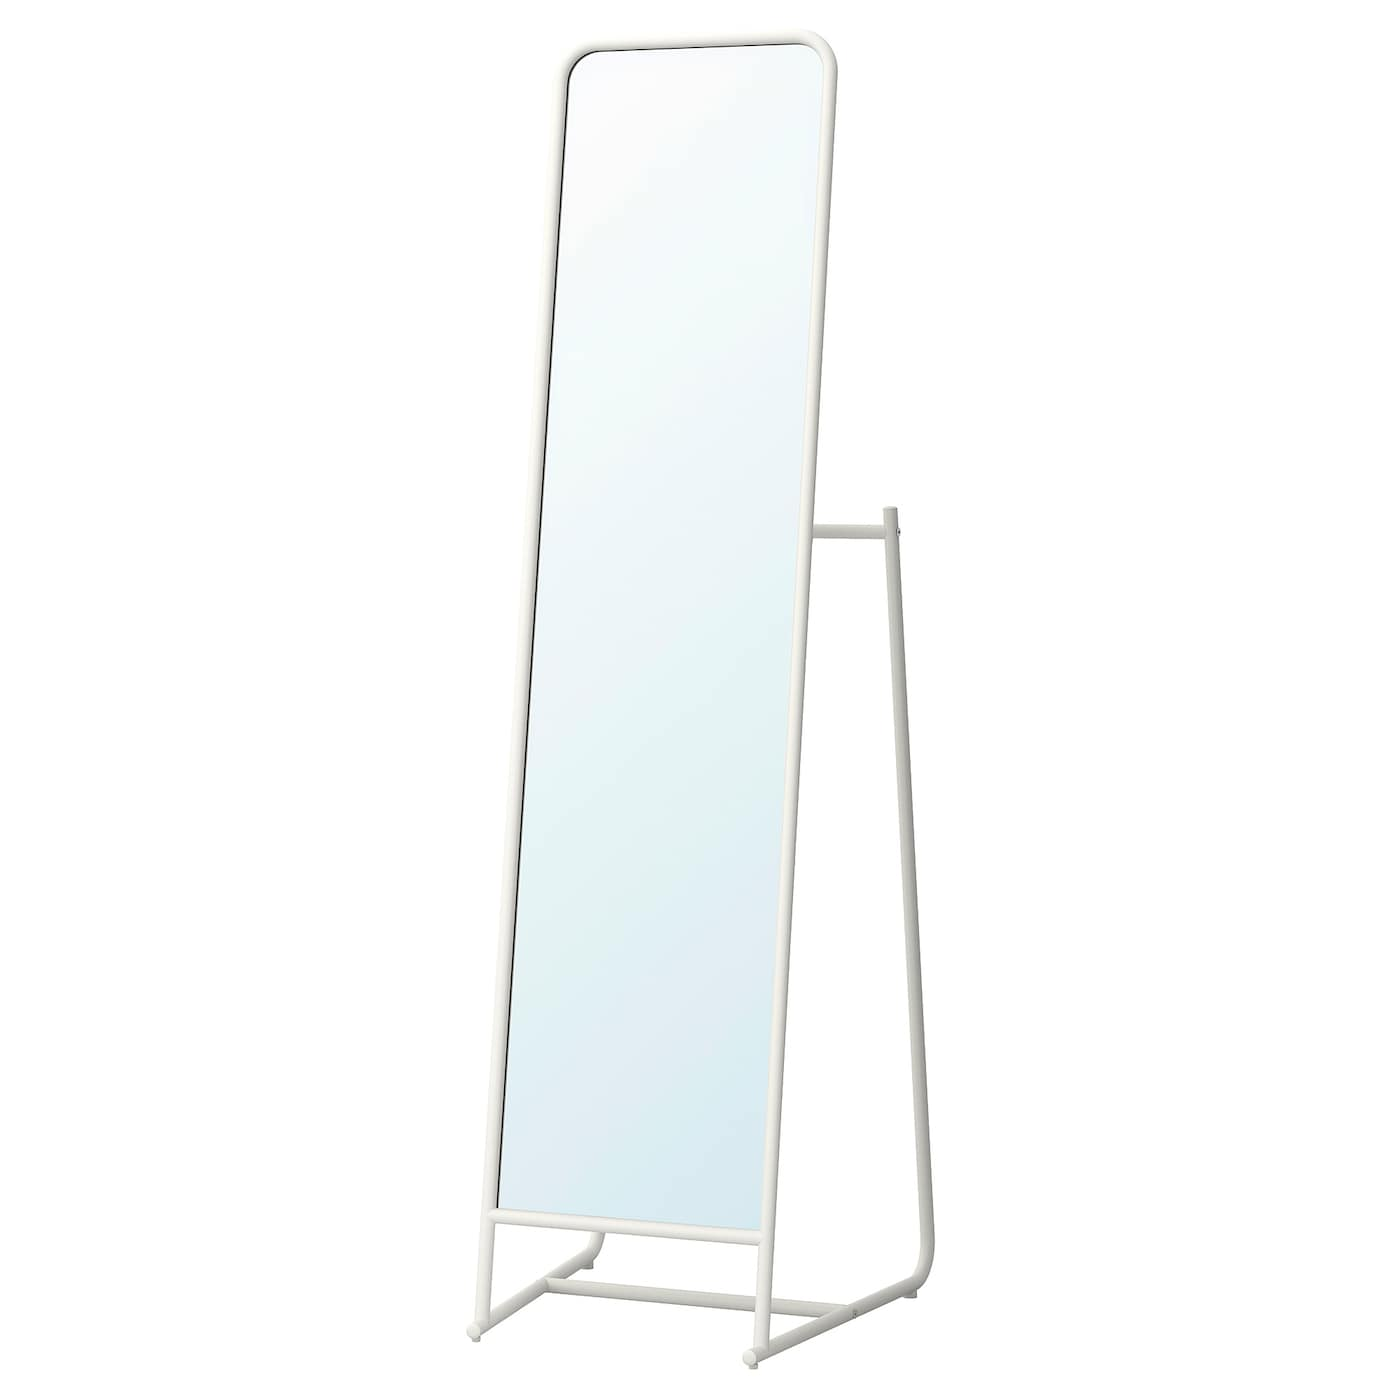 IKEA KNAPPER standing mirror Provided with safety film - reduces damage if glass is broken.